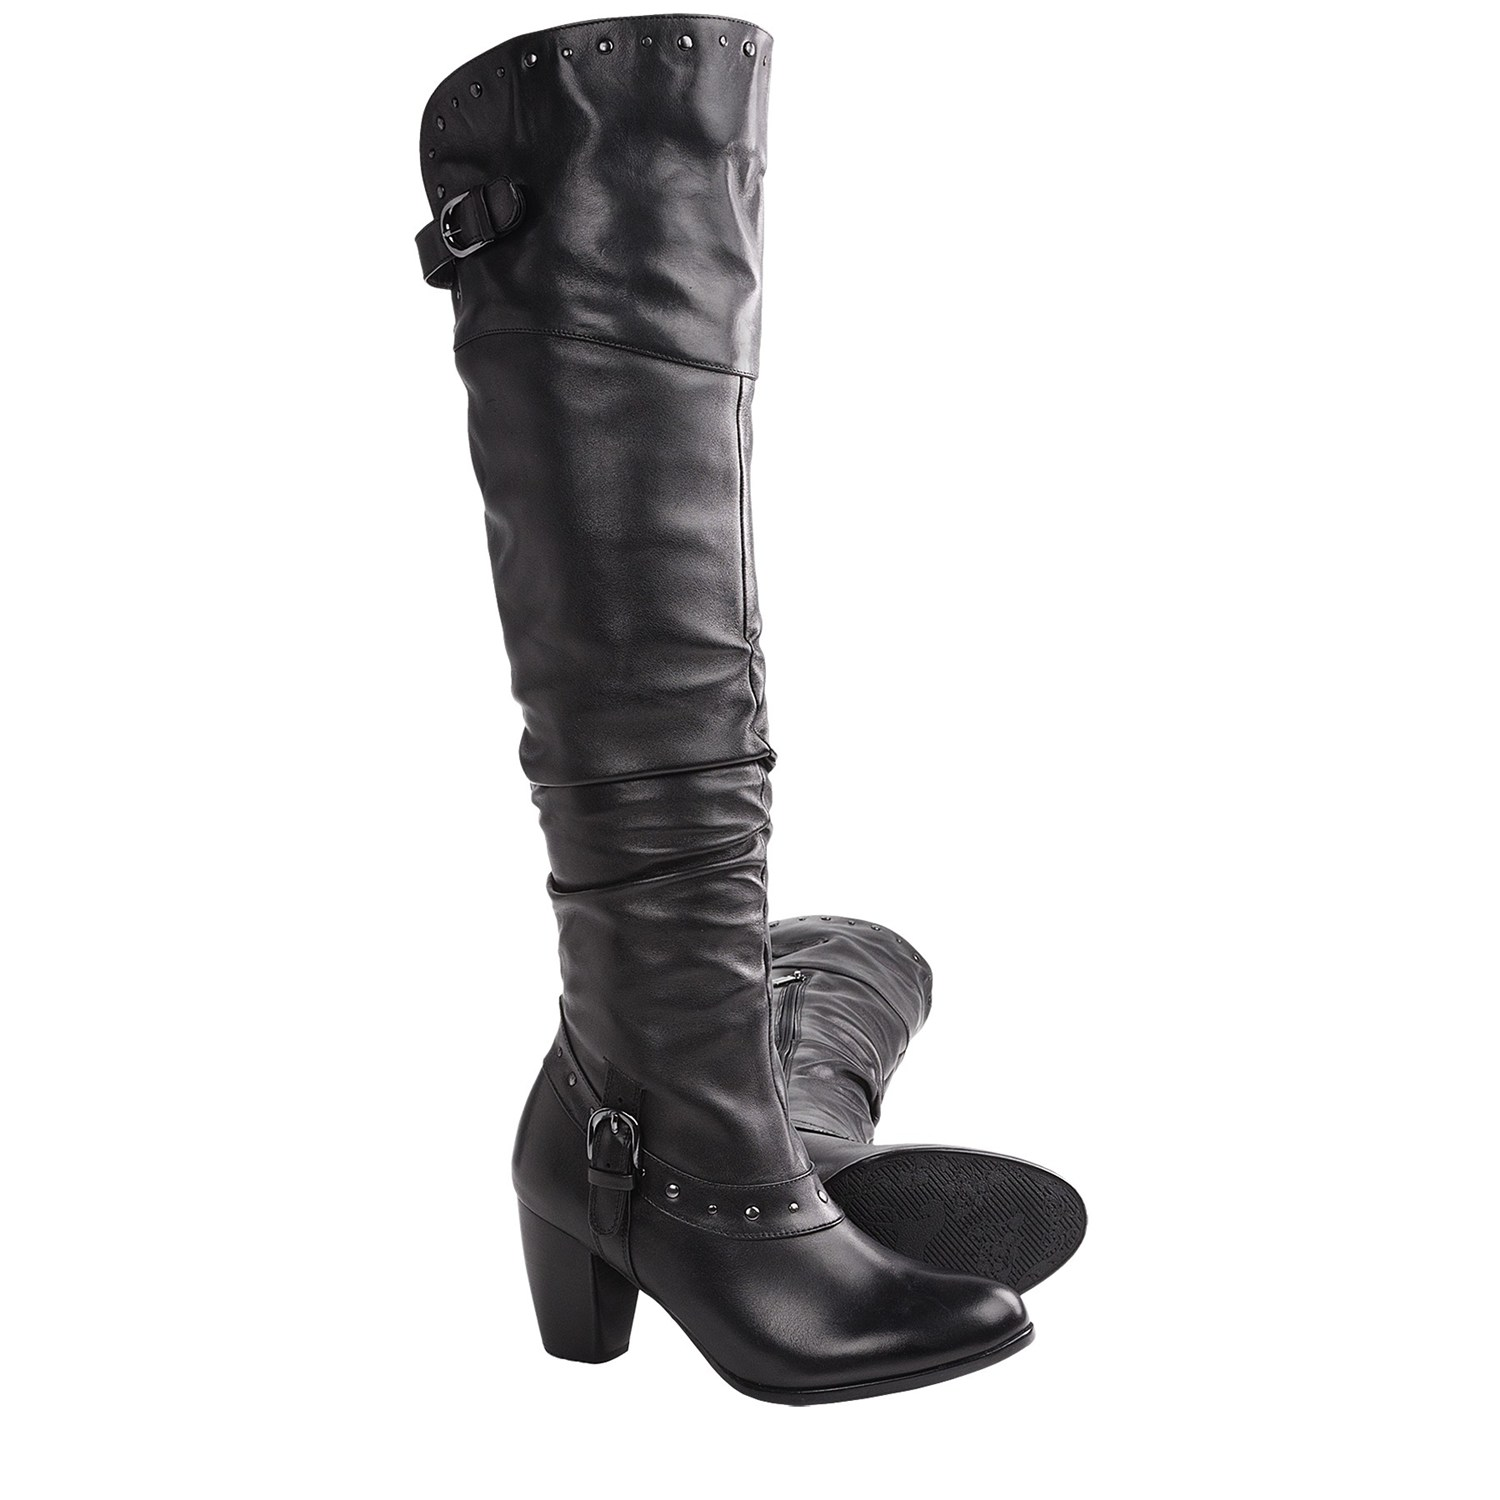 Women Leather Boots xW7y4pdj